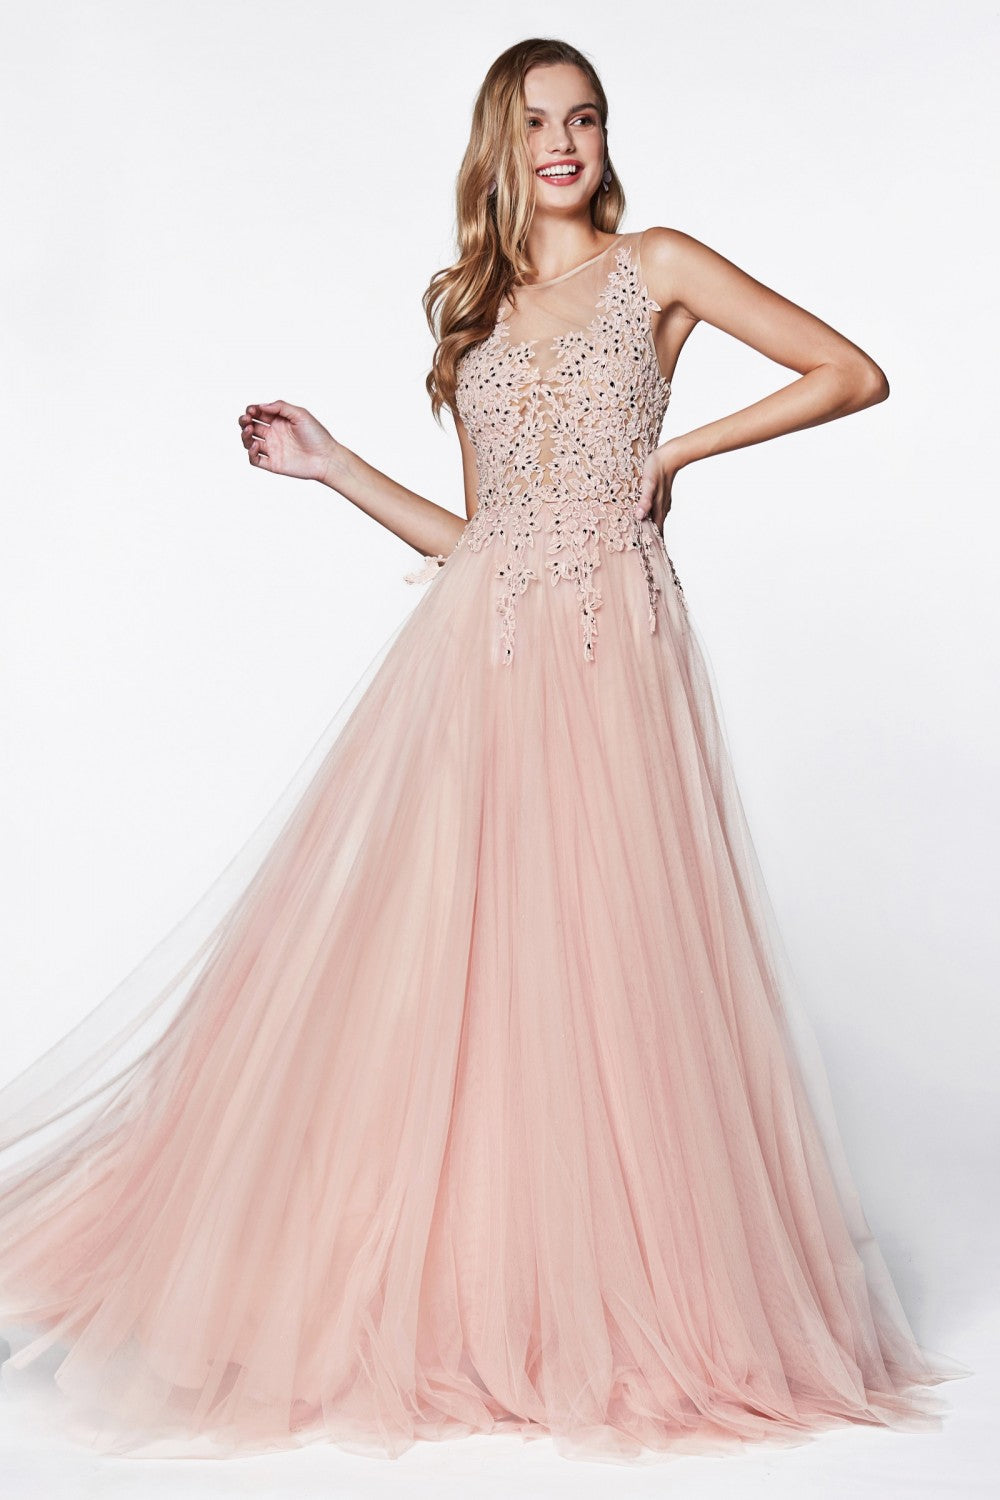 A-Line Gown With Tulle Skirt And Jewled Lace Bodice